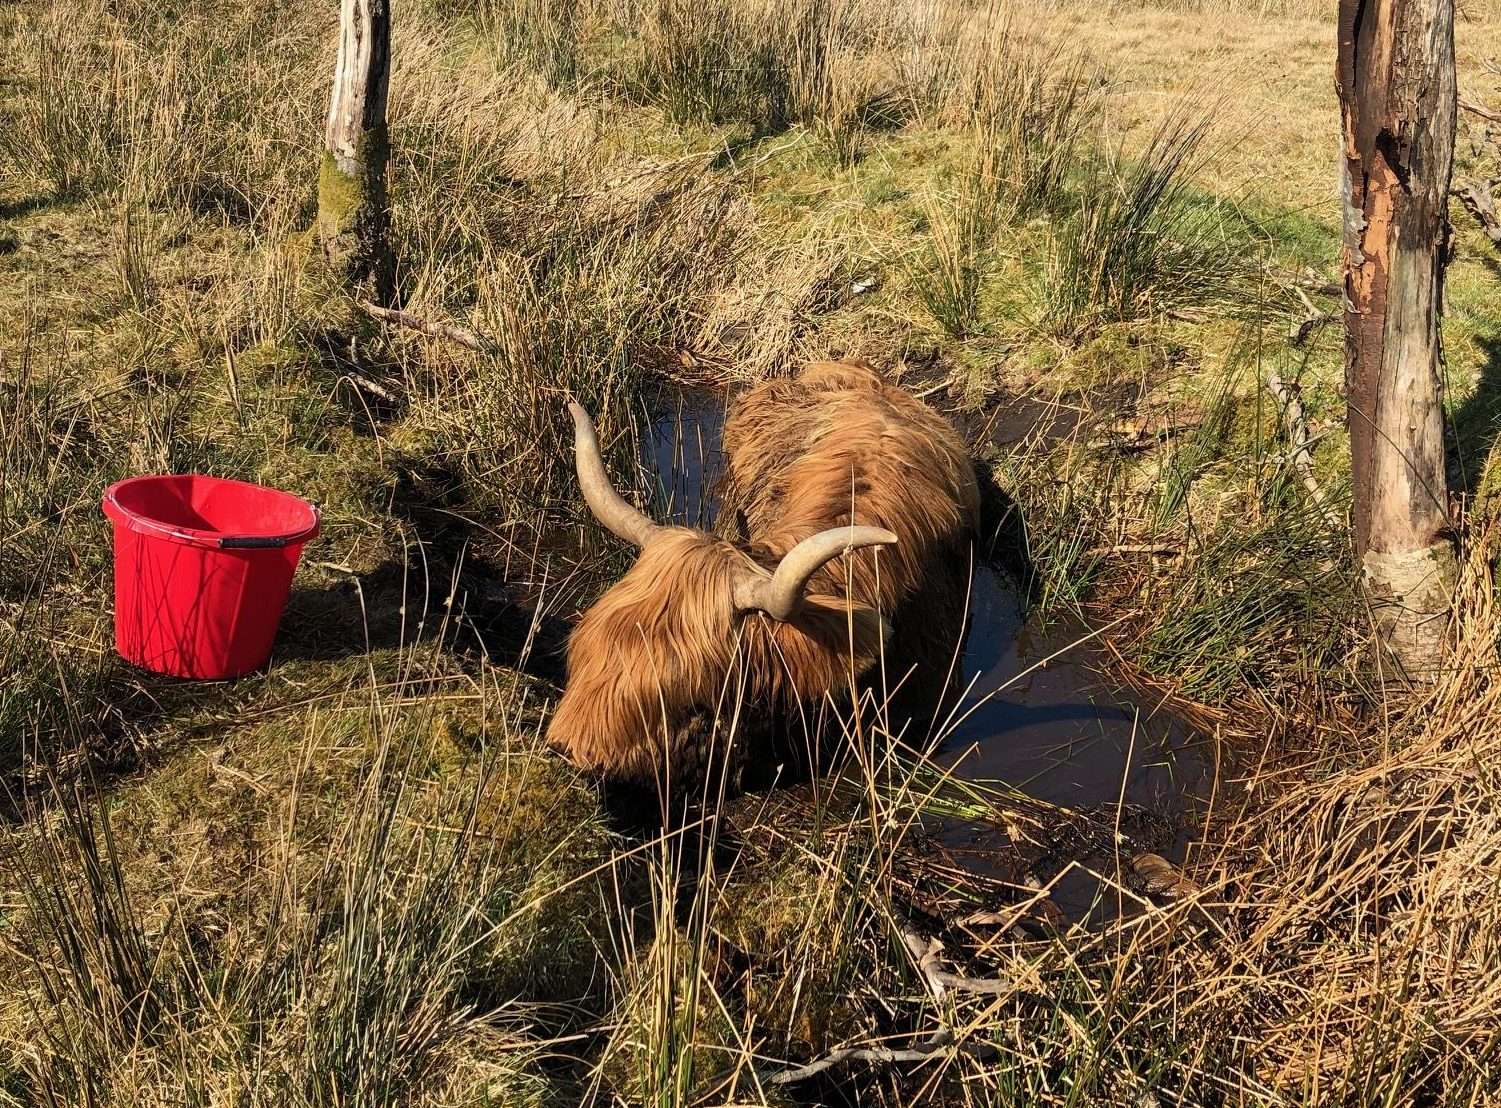 Gigha, a Highland cow that had to be rescued from a ditch, yesterday.